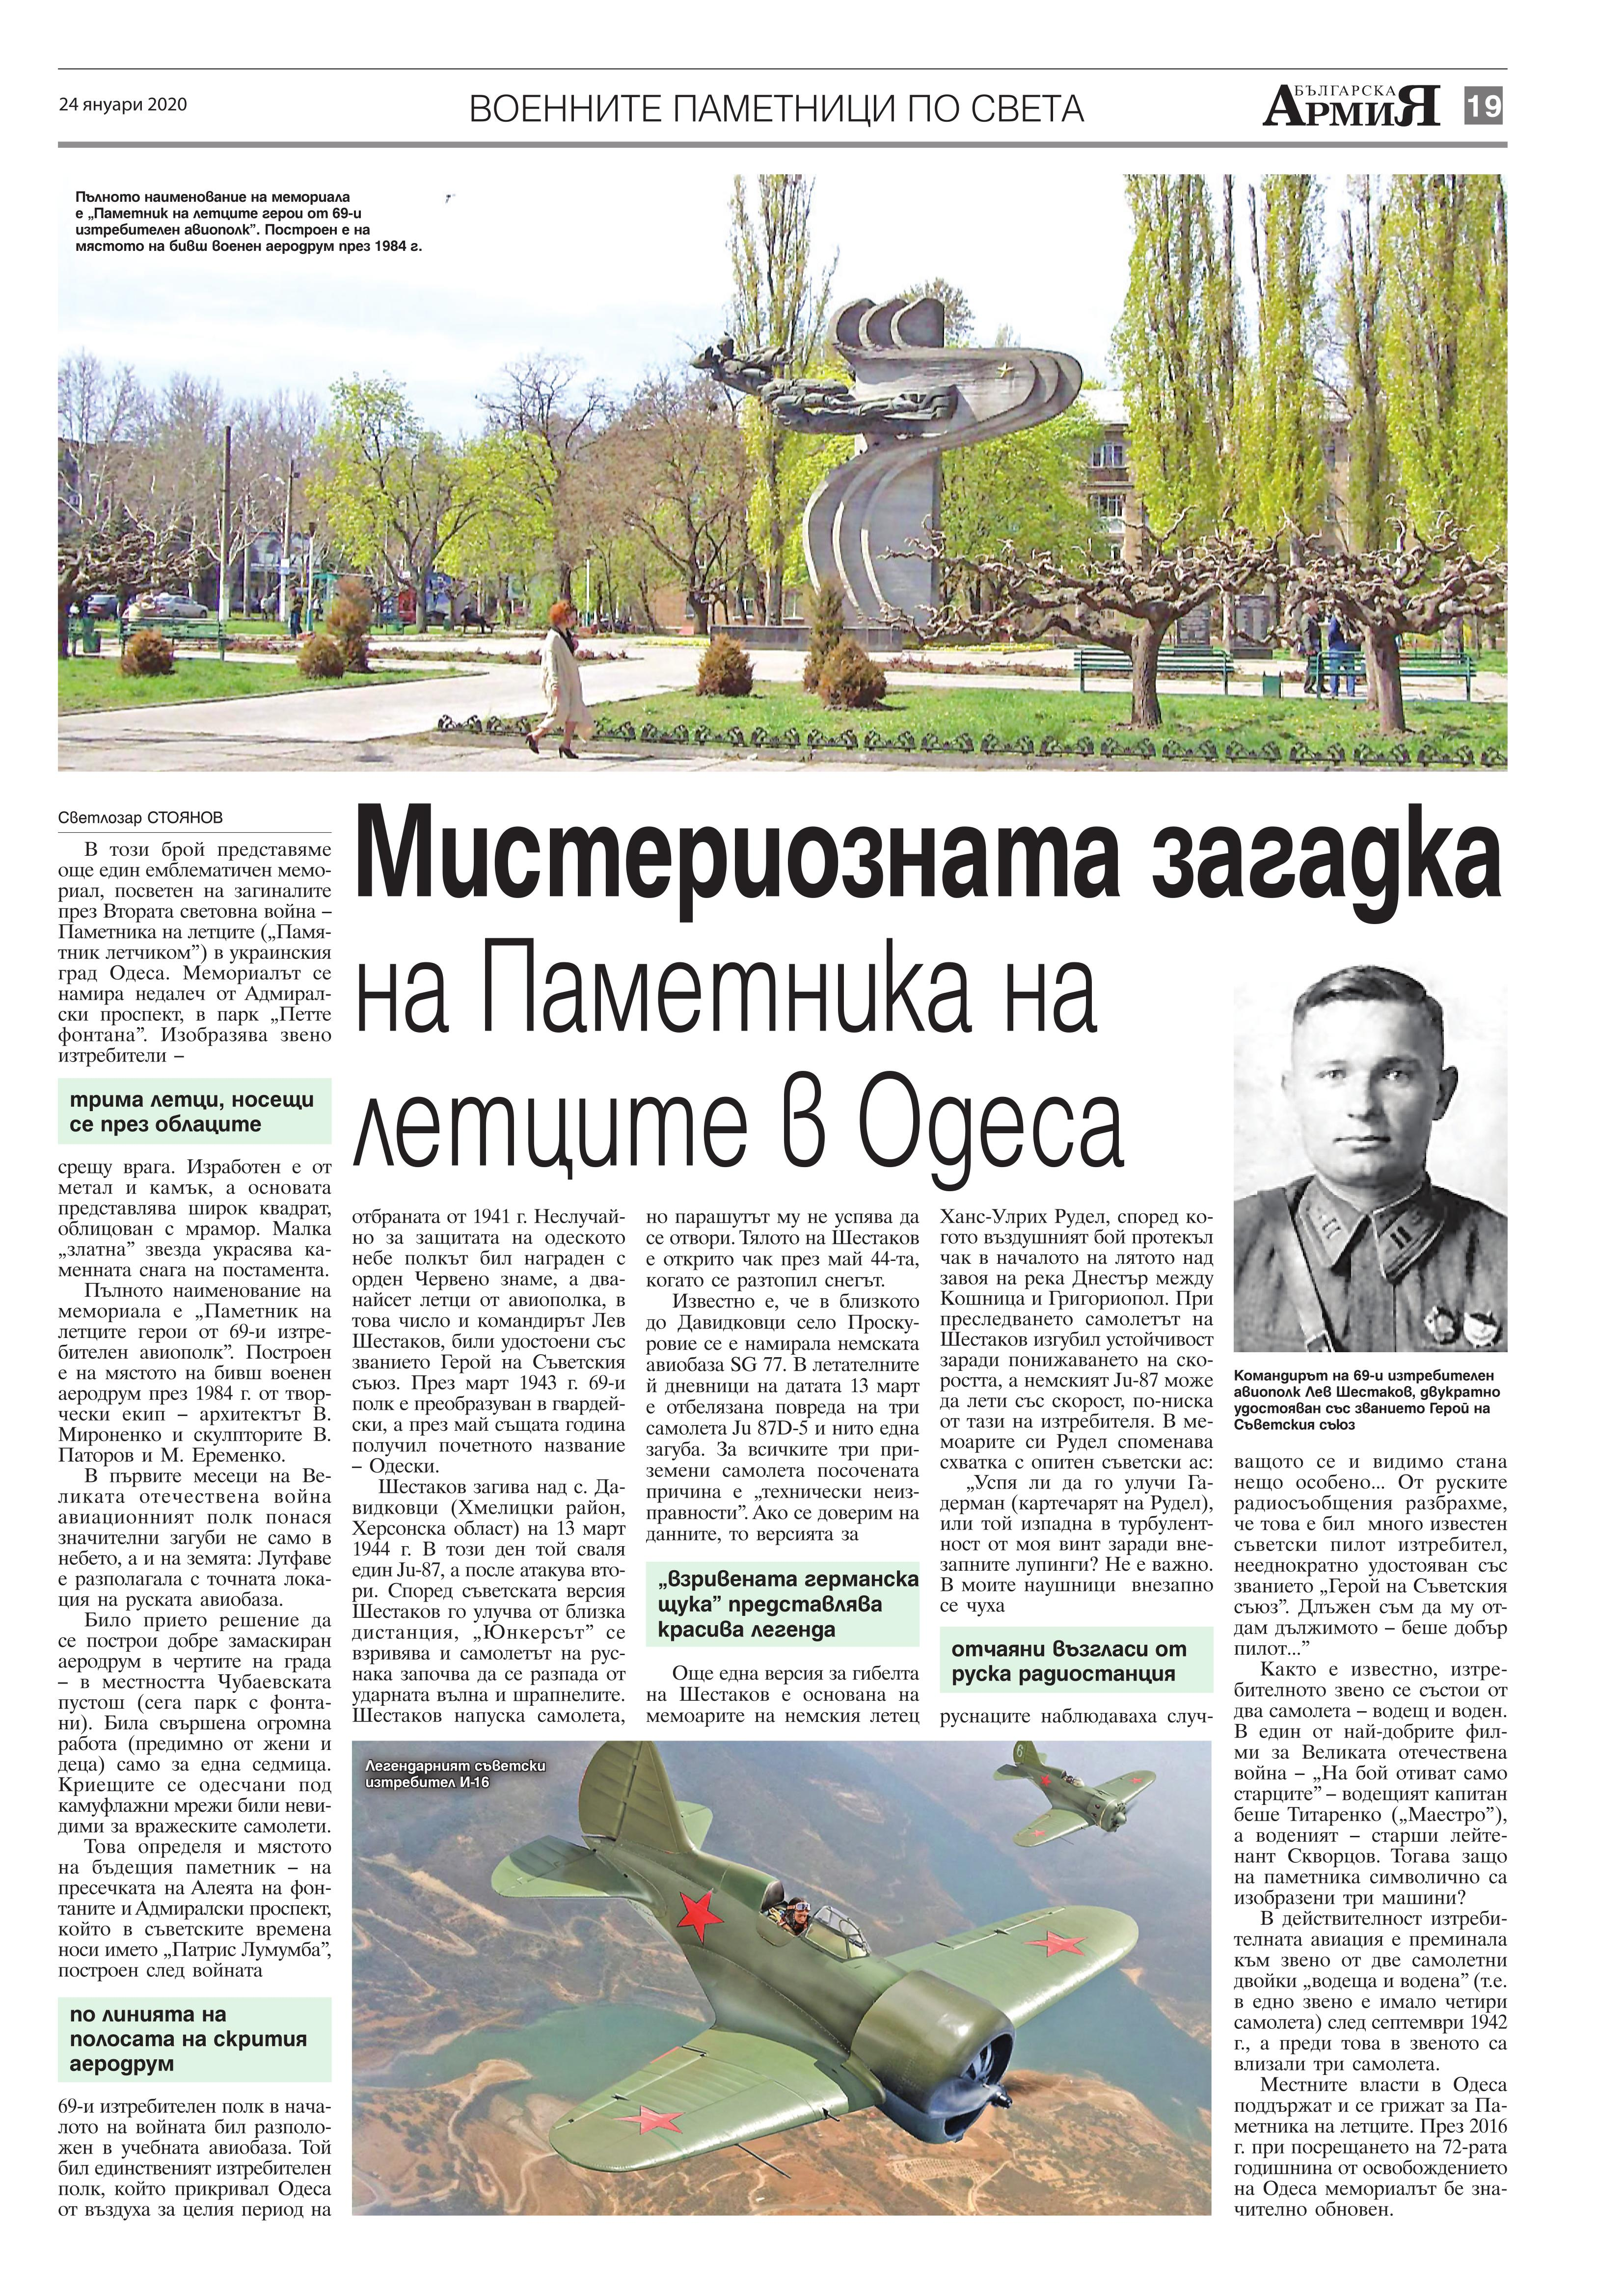 https://www.armymedia.bg/wp-content/uploads/2015/06/19.page1_-125.jpg